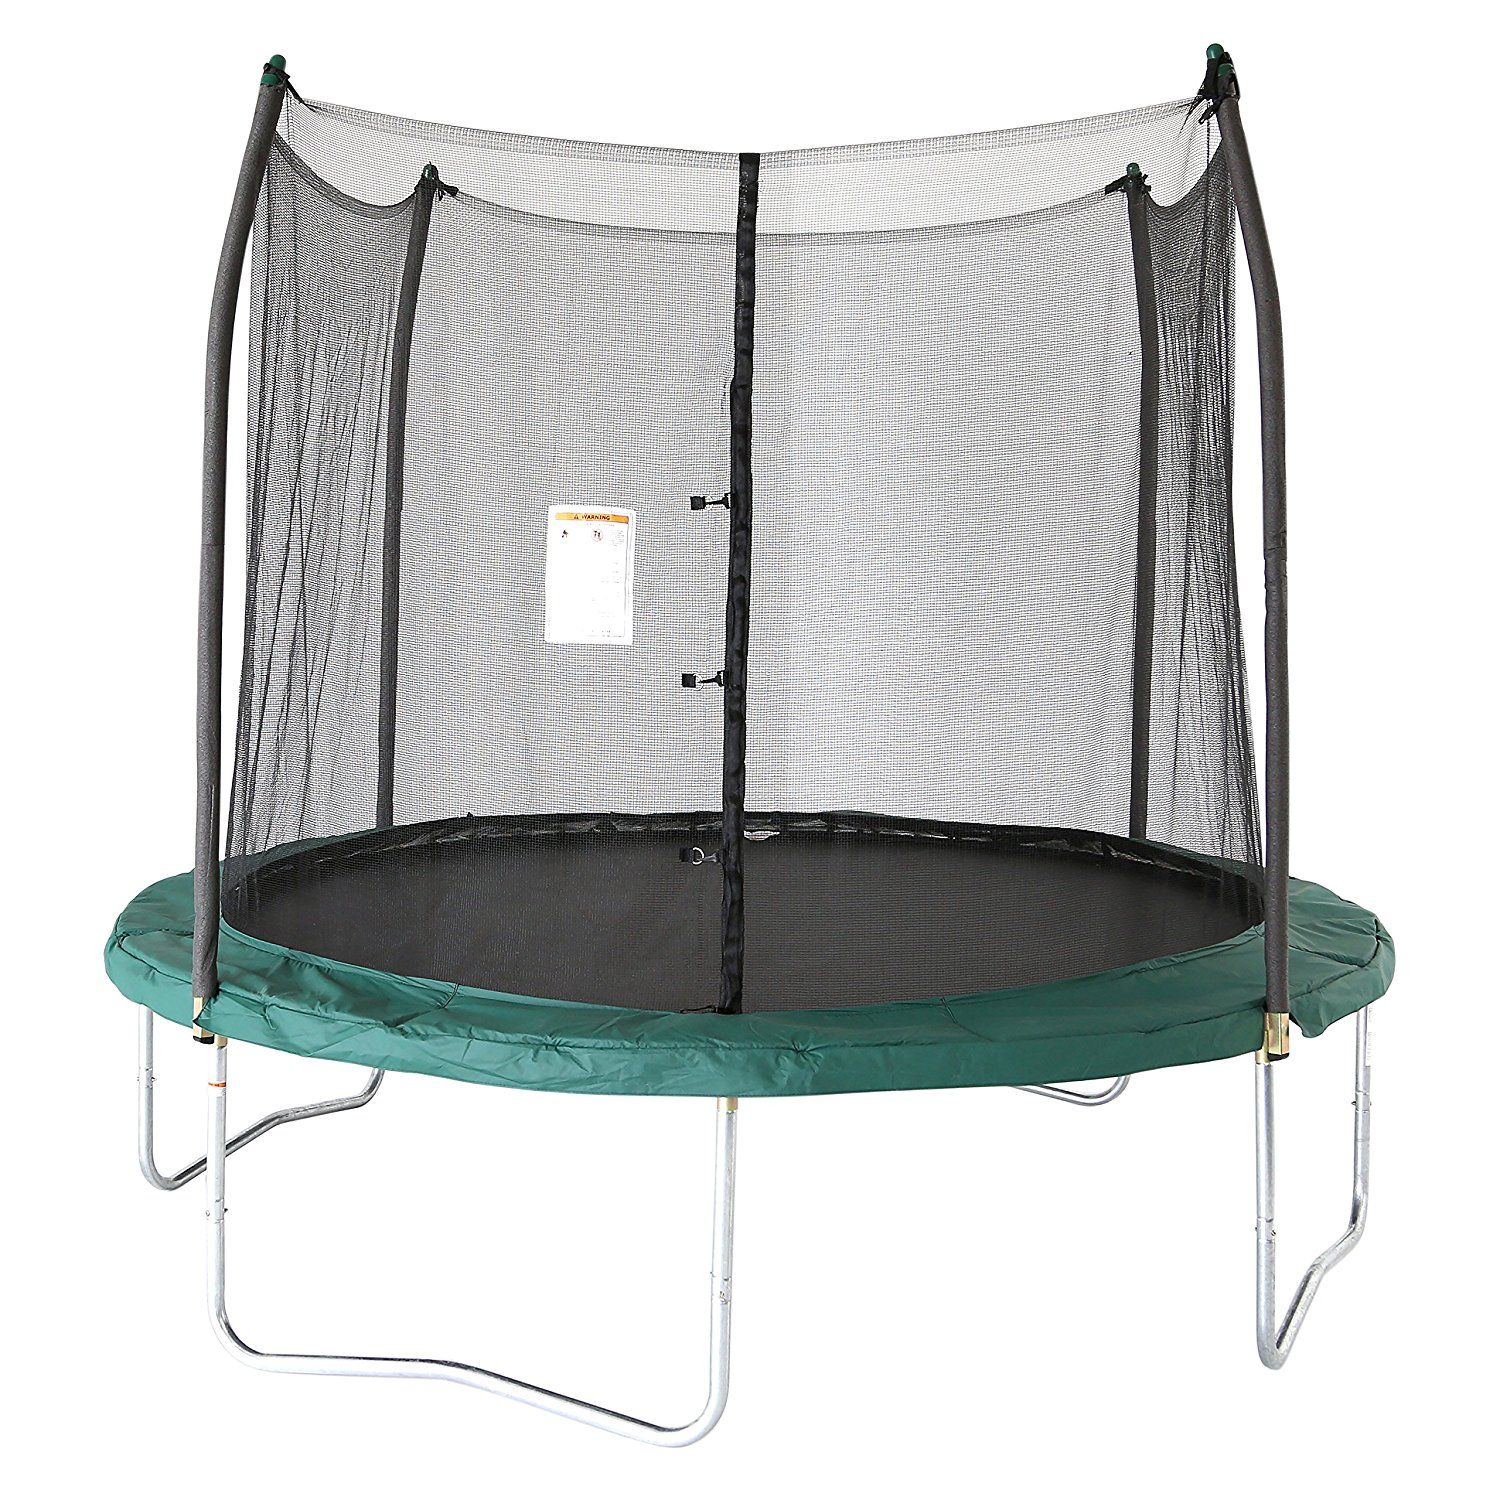 Skywalker Trampolines 10 Ft Round Trampoline And Enclosure Only 145 Trampoline Enclosure Rectangle Trampoline Best Trampoline